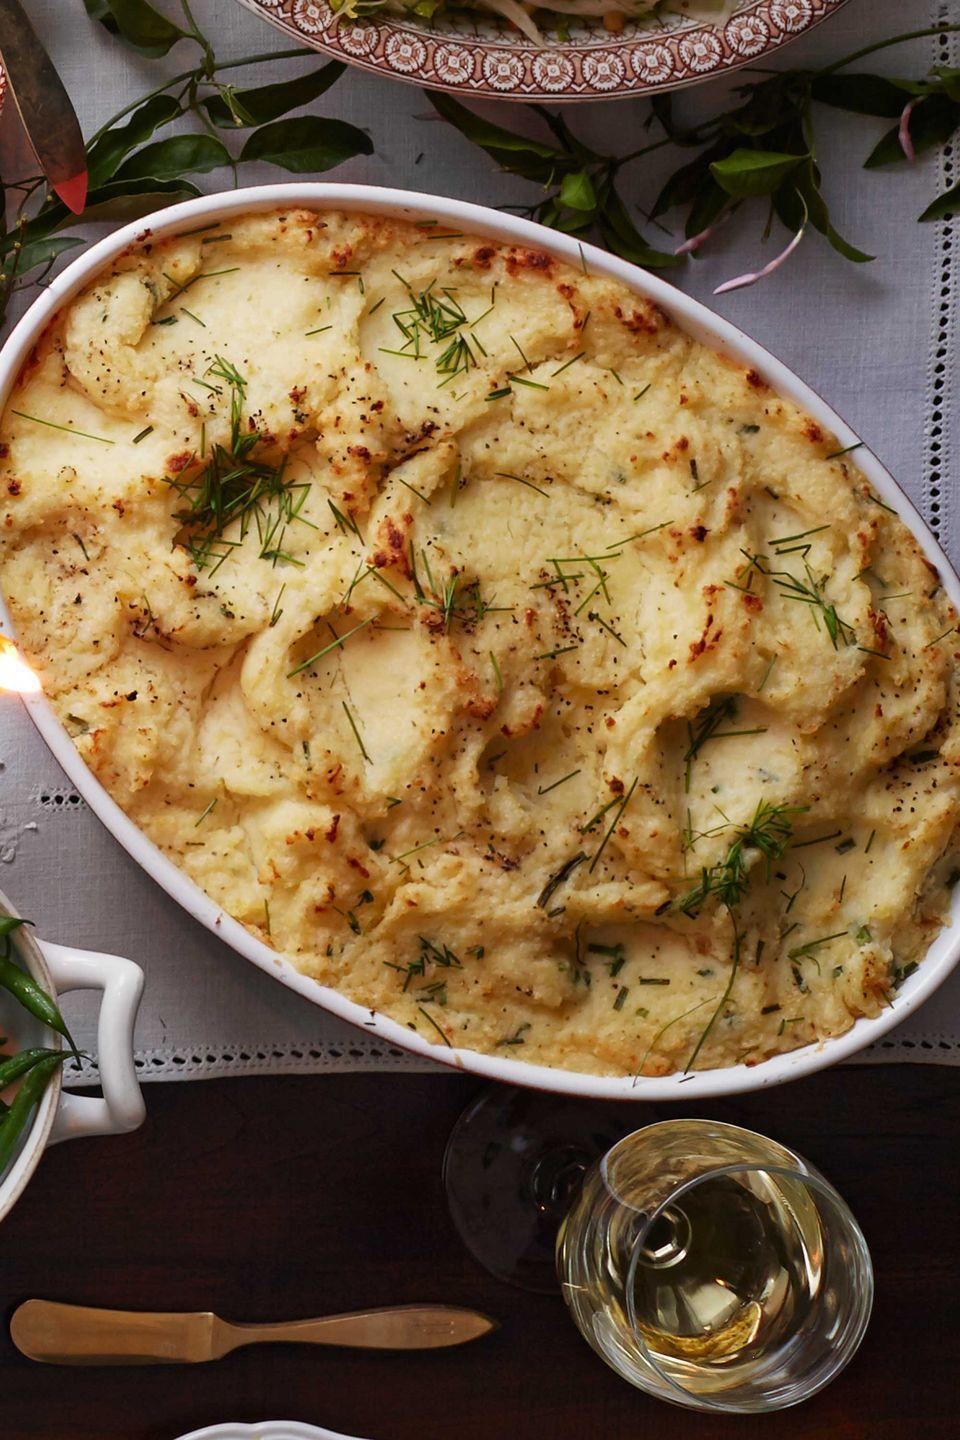 "<p>Ditch the boxed potatoes this year and make this luxurious take on mashed potatoes with full-flavor Boursin cheese.</p><p><strong><a href=""https://www.countryliving.com/food-drinks/recipes/a5916/buttermilk-boursin-potatoes-recipe-clx1114/"" rel=""nofollow noopener"" target=""_blank"" data-ylk=""slk:Get the recipe"" class=""link rapid-noclick-resp"">Get the recipe</a>.</strong></p>"